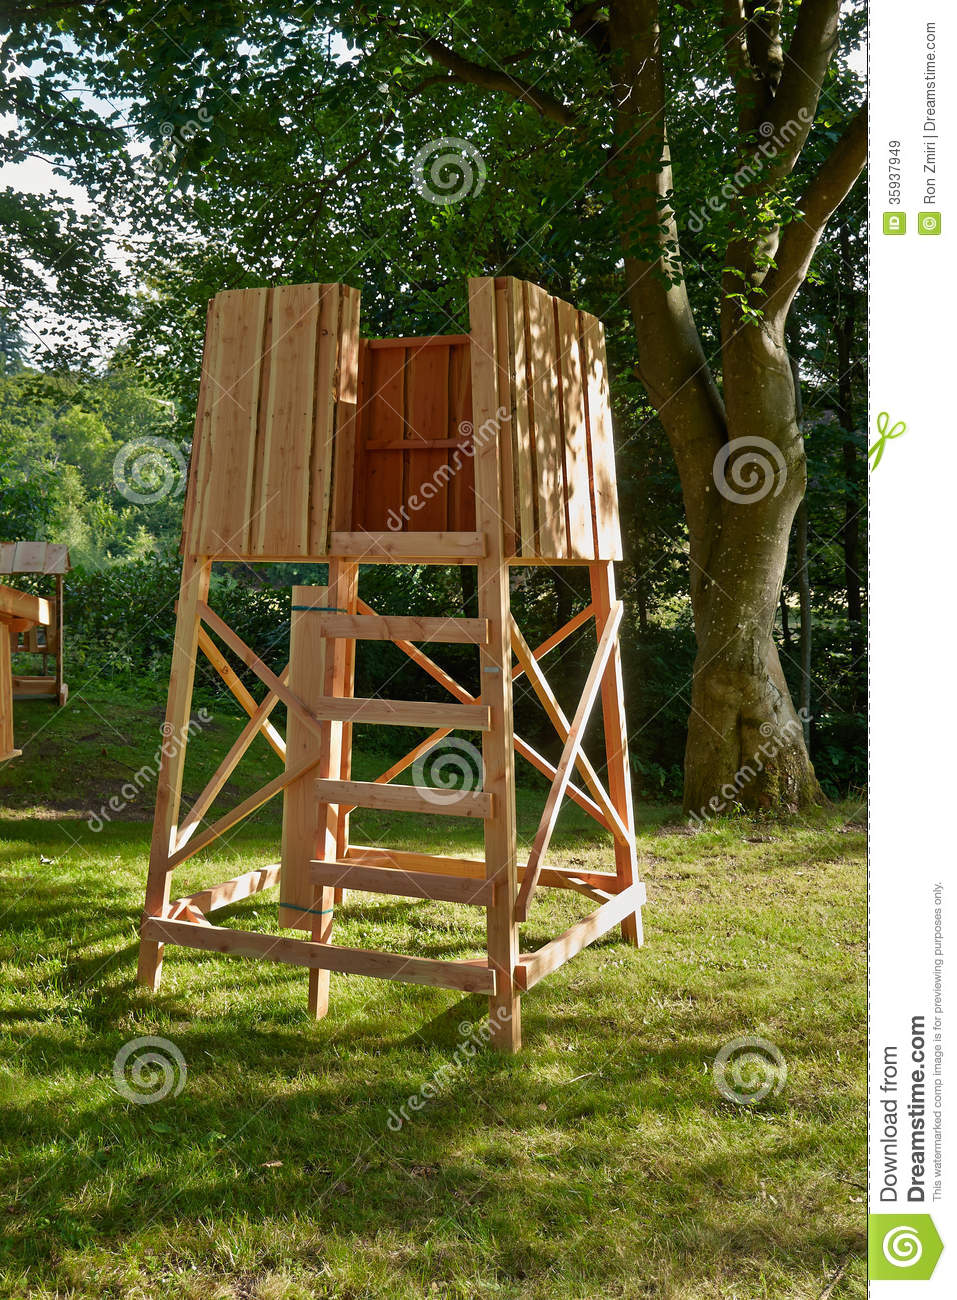 Hunter 39 s box shooting stand stock image image 35937949 for Wooden box tree stands